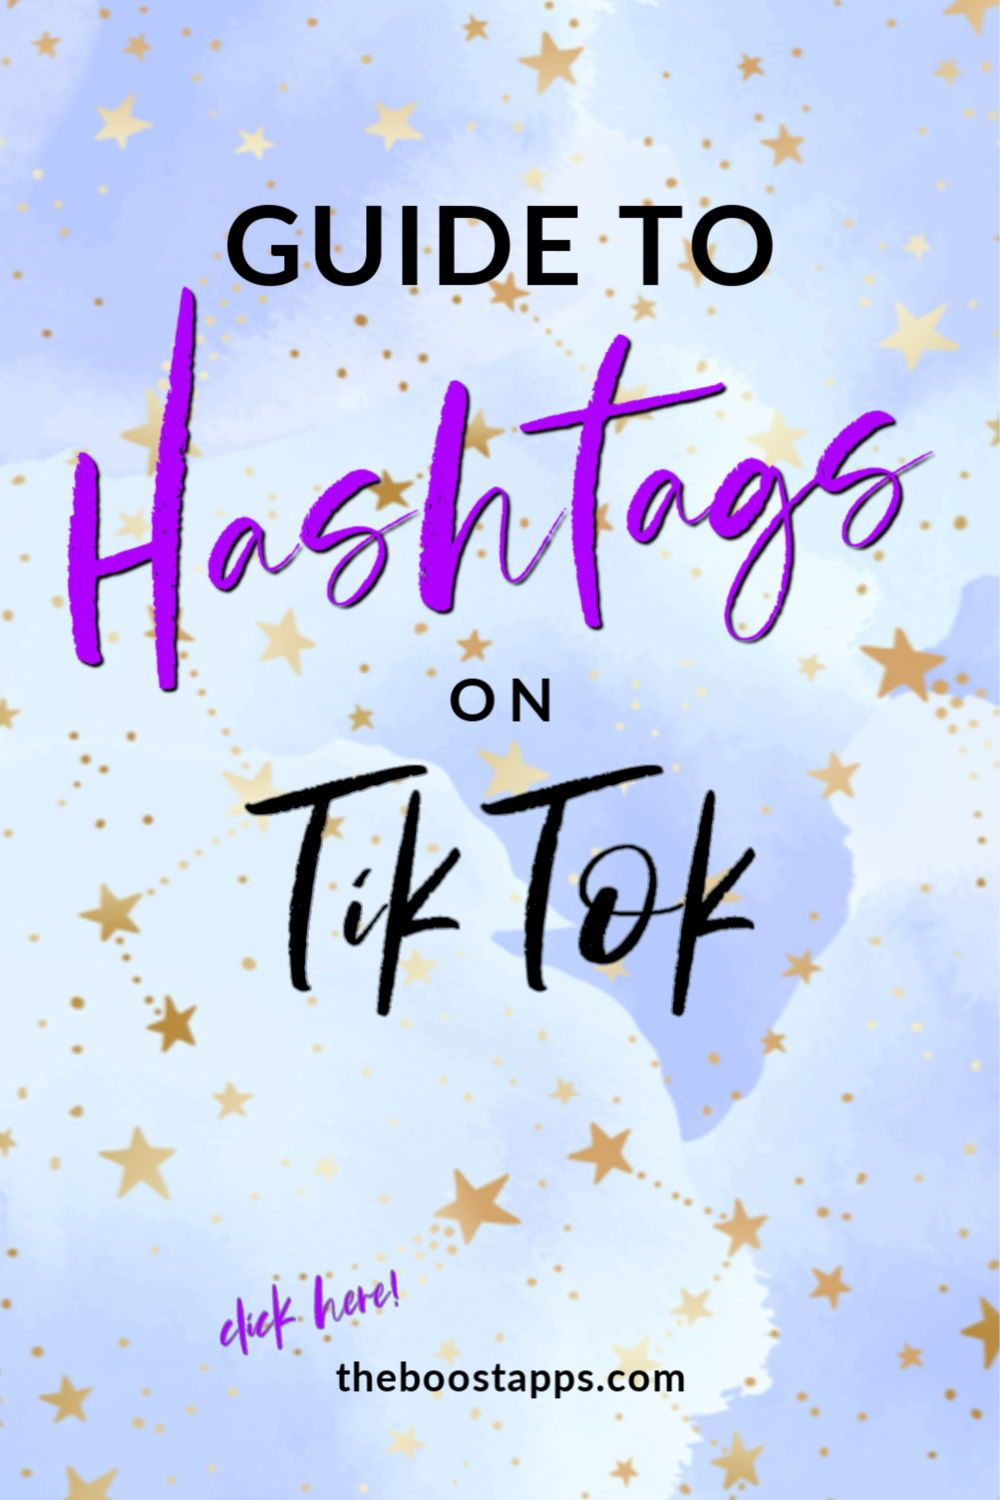 Tiktok Hashtags A Guide To Using Hashtags On Tiktok Boosted Social Media Marketing Business How To Use Hashtags Marketing Strategy Social Media